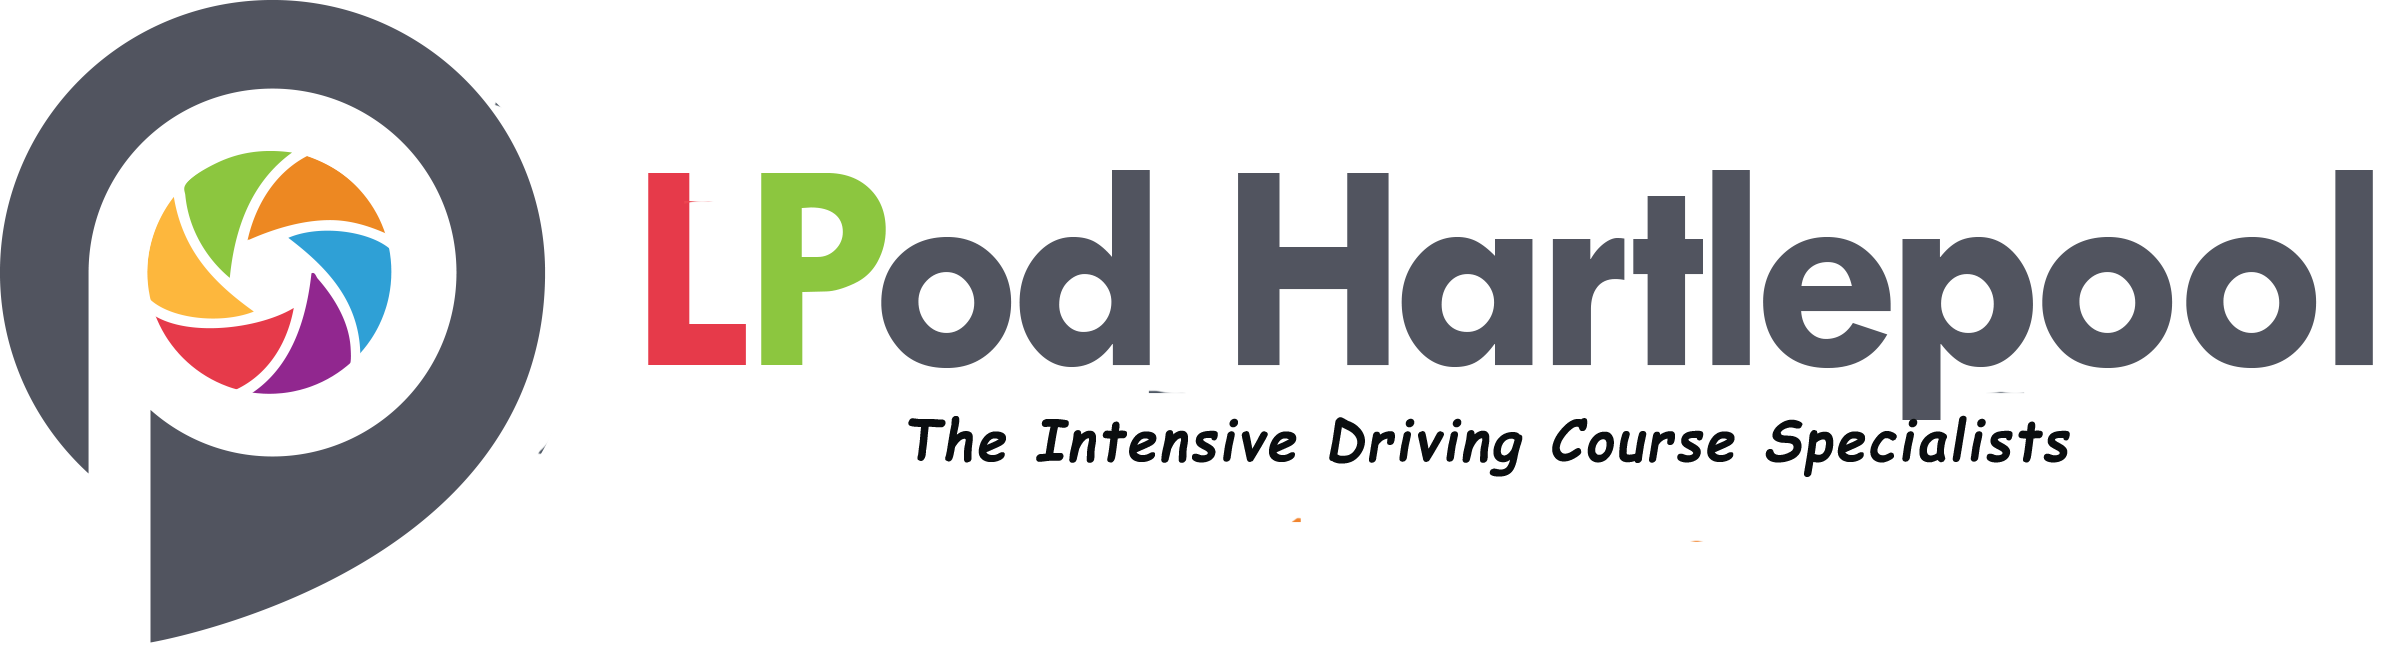 intensive driving courses hartlepool, intensive driving lessons hartlepool